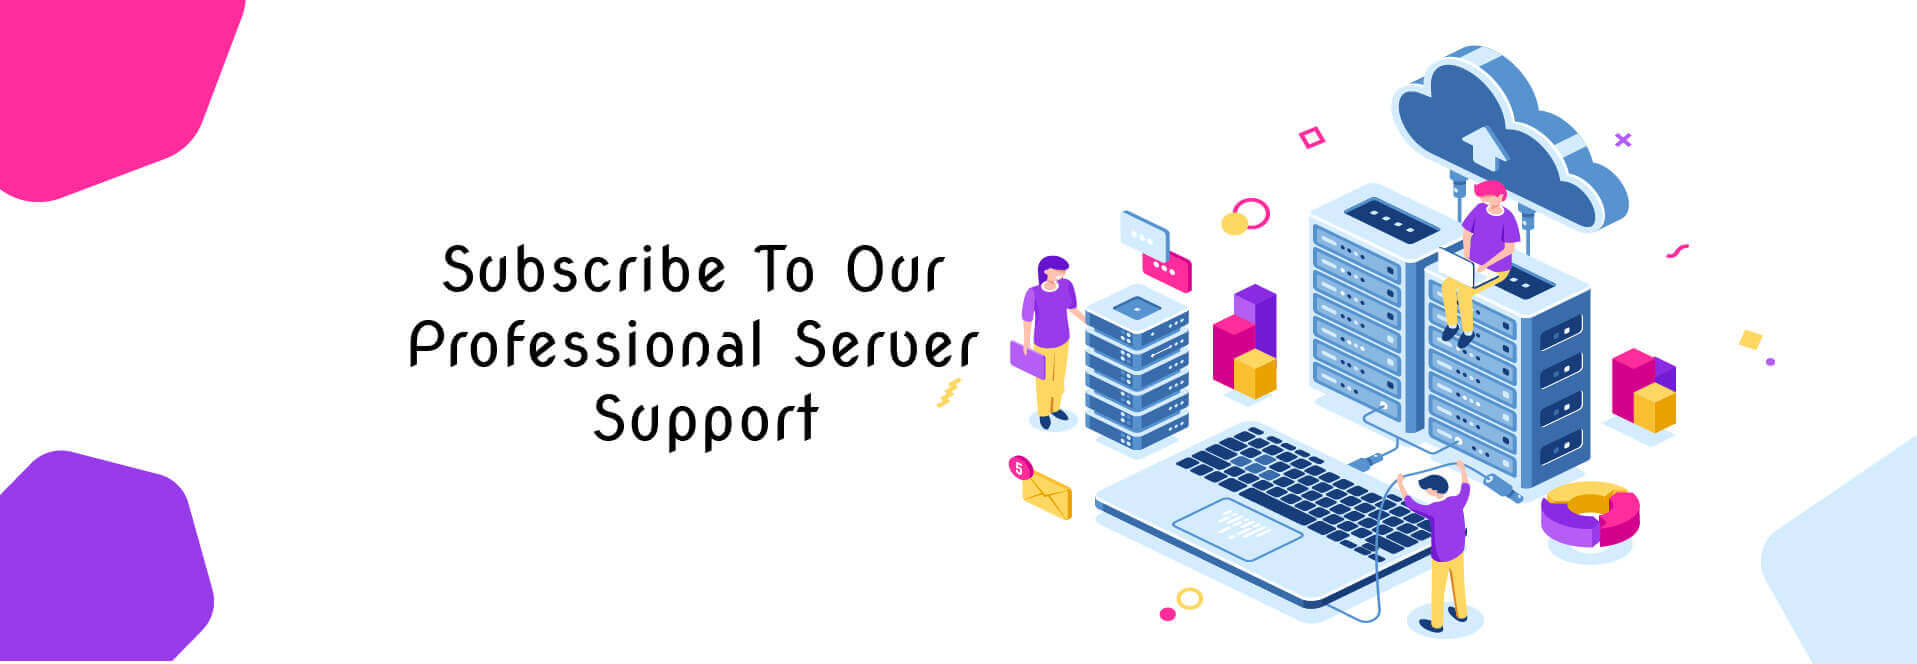 unrivaled-tech-support-and-service